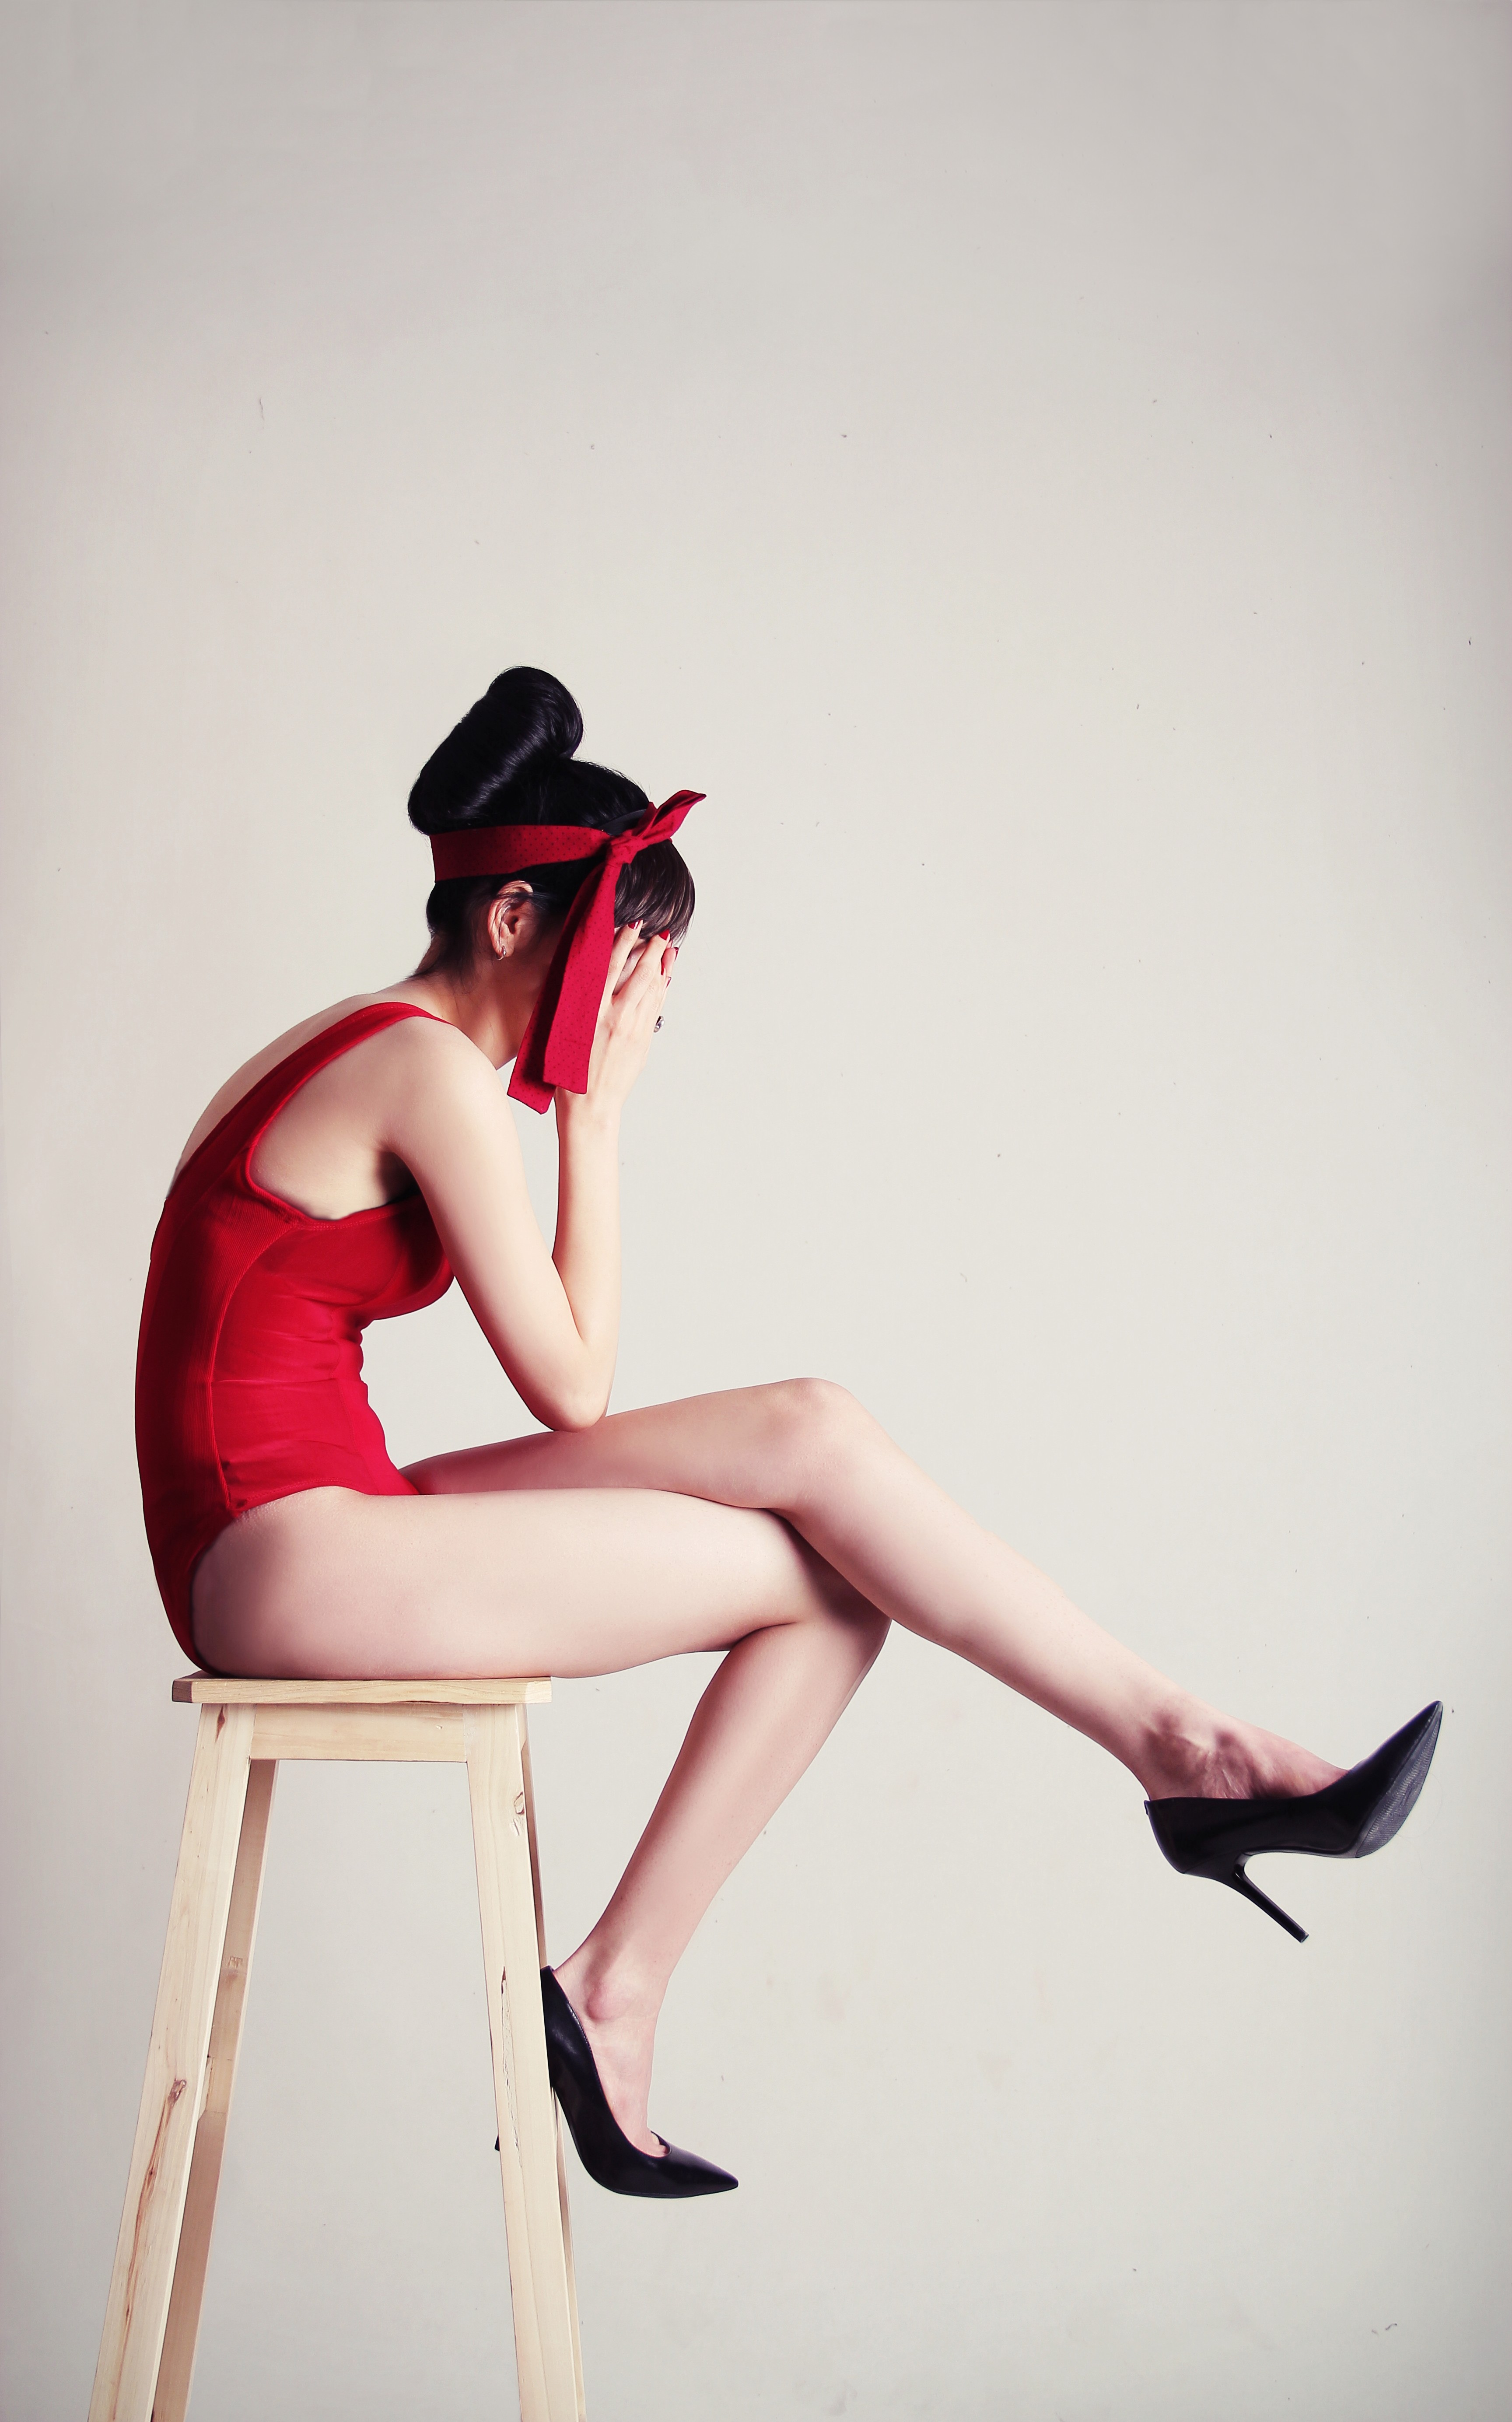 A woman in a red leotard with hands over face in despair sitting on a wooden stool.